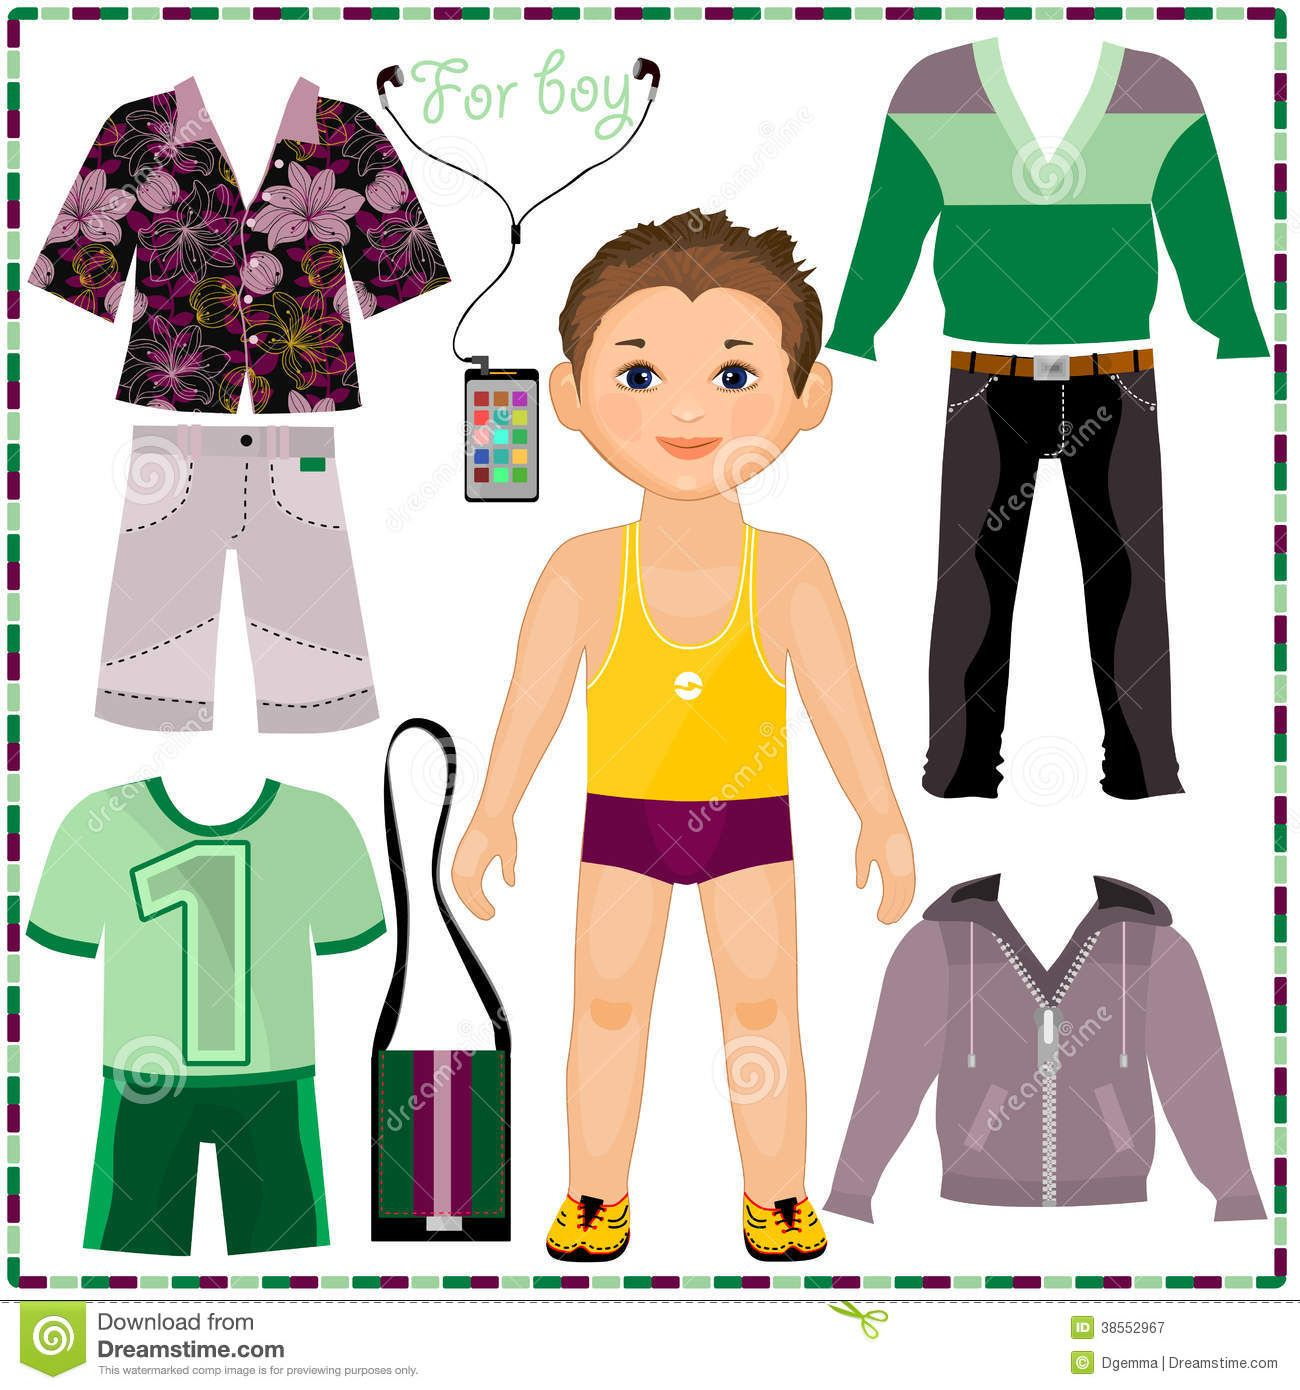 Paper Doll With A Set Of Fashionable Clothing PAPER